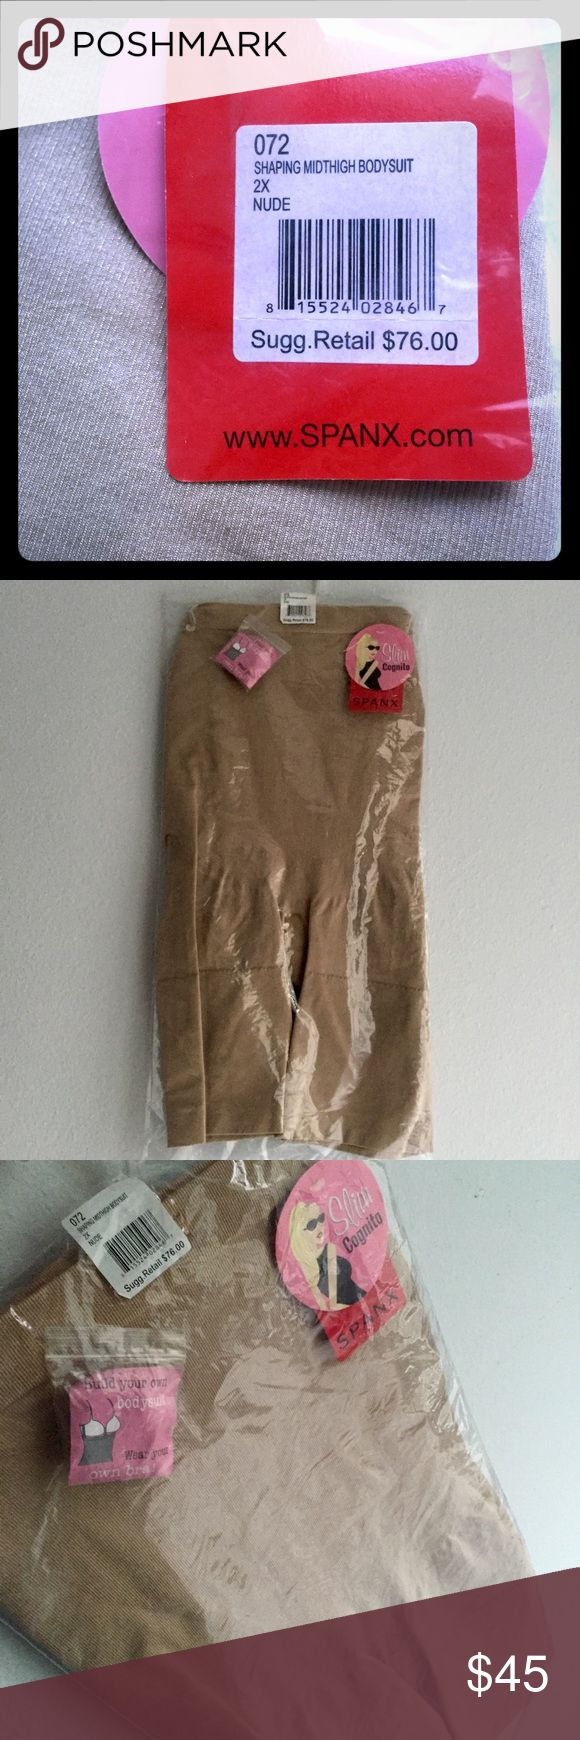 SPANX mid-thigh bodysuit Nude, 2x, never opened. ****Just to assure y'all NOTHING is sketchy on the many NWT spanx: My stepmom used to wear compression daily for warmth/support & bought in bulk. But she's now a diabetic retiree living in the subtropics so a reserve cache is totally unnecessary. Make me an offer 😊! SPANX Intimates & Sleepwear Shapewear